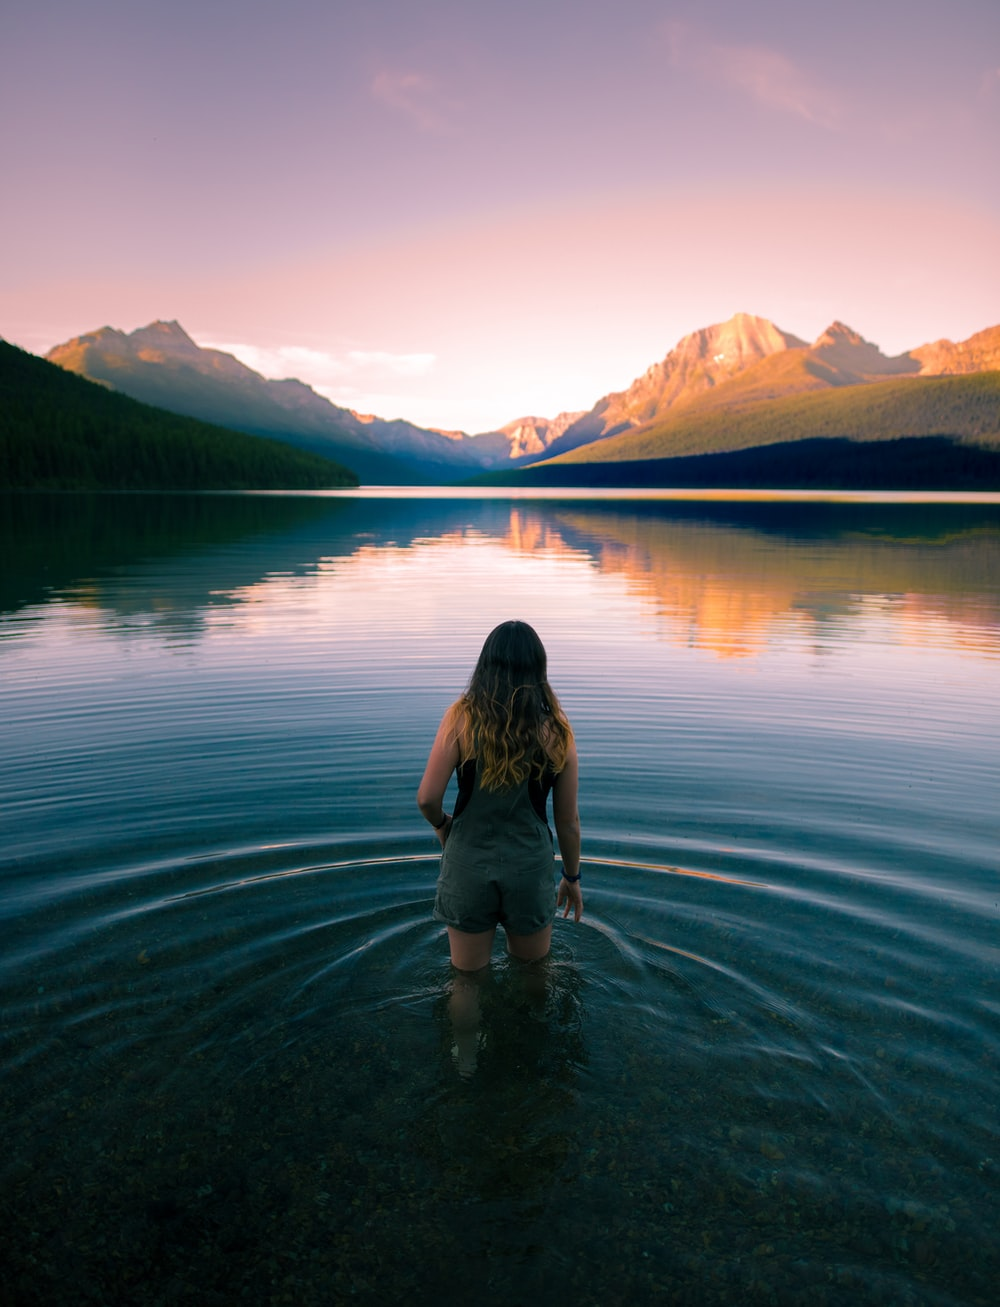 woman in blue overall shorts on body of water